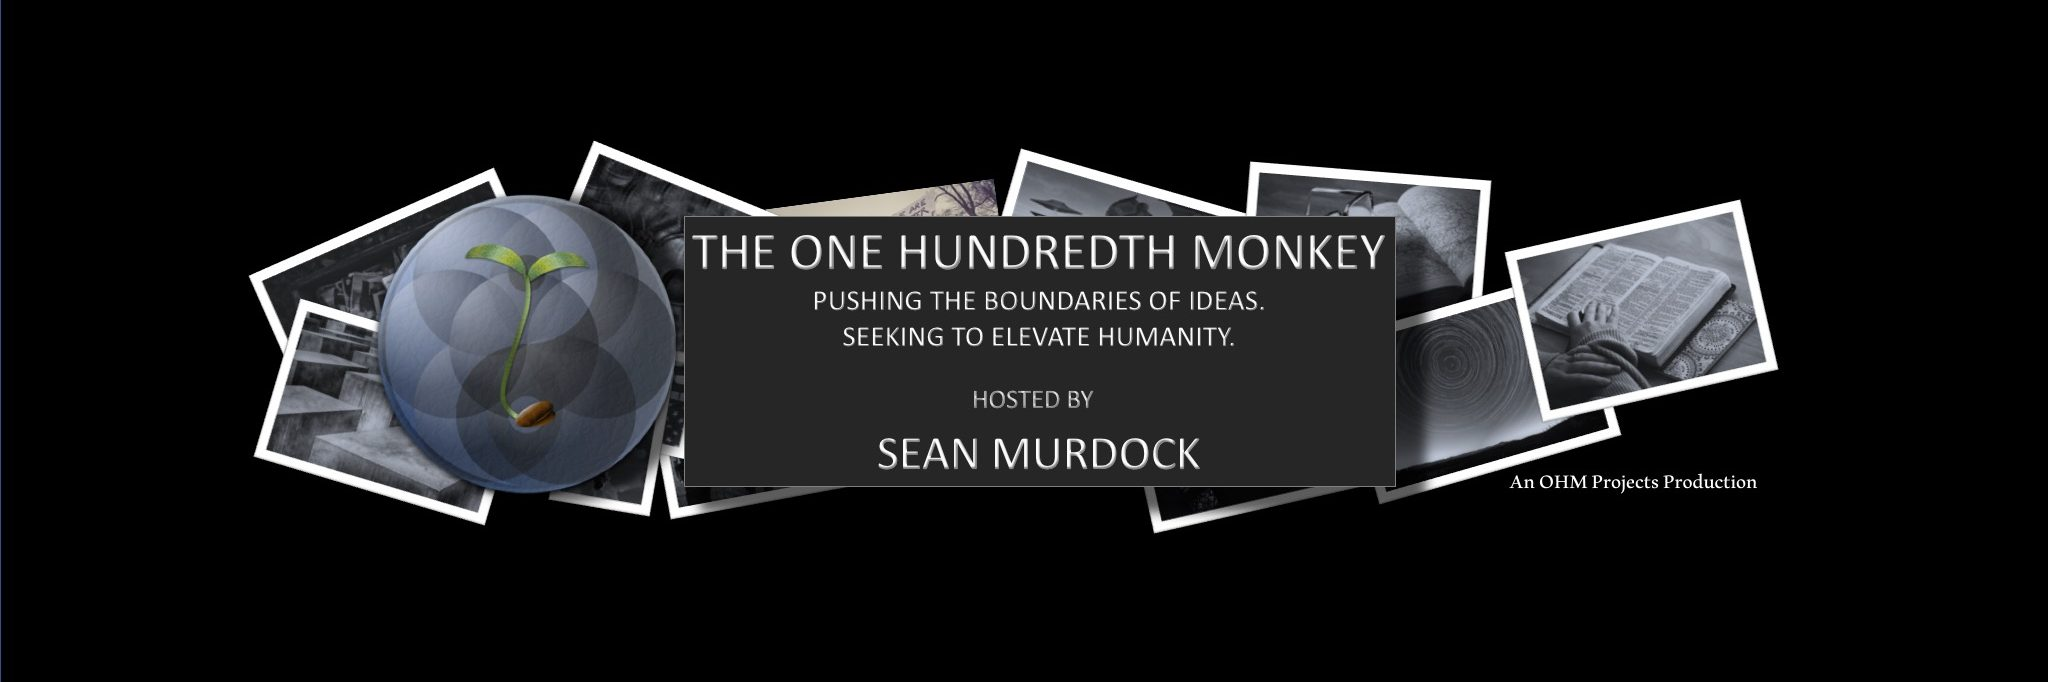 Sean Murdock Talks